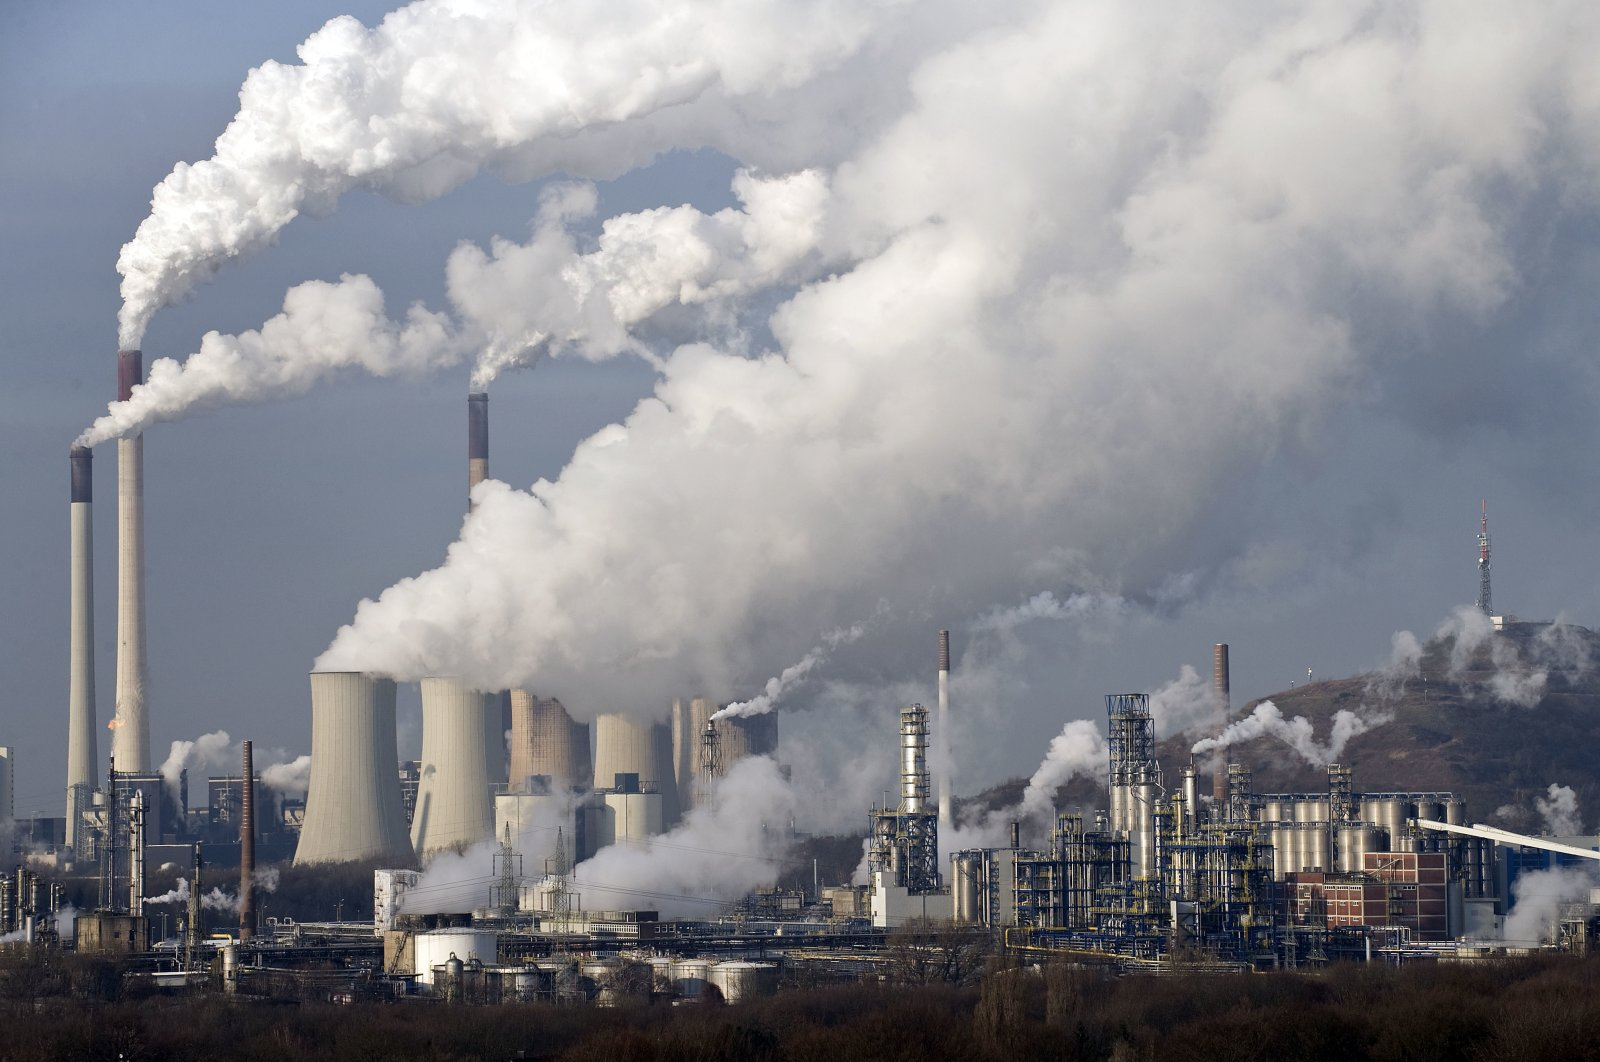 In this file photo, steam and smoke rise from a coal burning power plant in Gelsenkirchen, Germany, Dec. 16, 2009 (AP Photo)